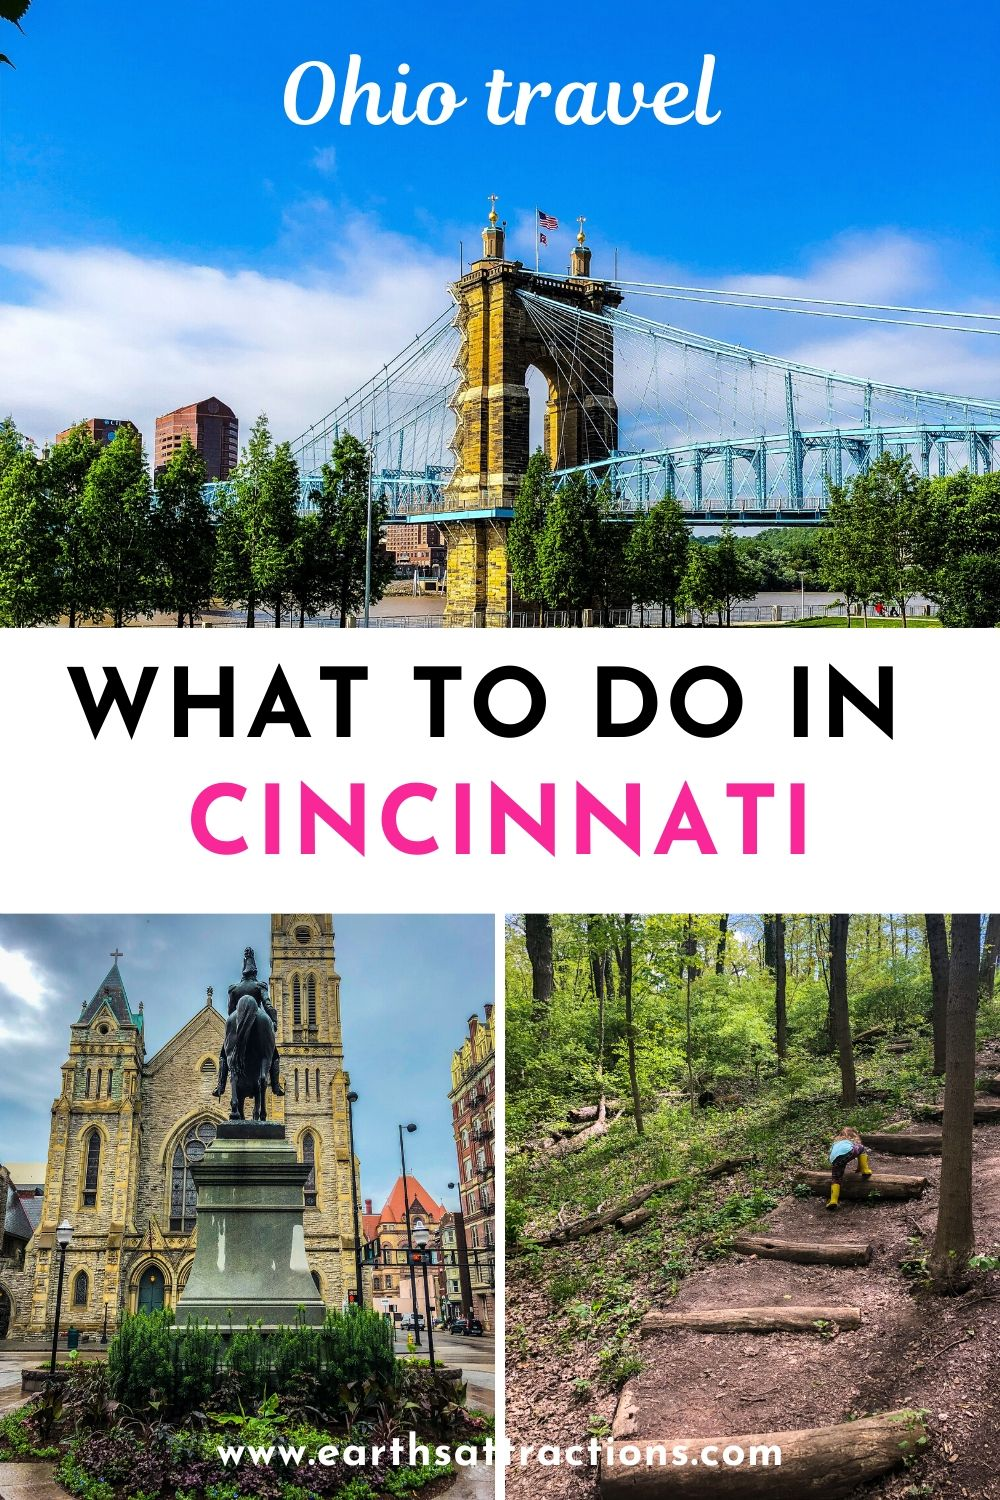 What to do in Cincinnati. Planning a trip to Cincinnati? Then read this Cincinnati travel guide before you get there. Discover the best things to do in Cincinnati and create your Cincinnati bucket list and your Cincinnati itinerary. Read the article now - and save this pin for later. #cincinnati #ohio #cincinnatiguide #cincinnatithingstodo #usa #usatravel #ohiotravel #travelguides #earthsattractions #thingstodo #america